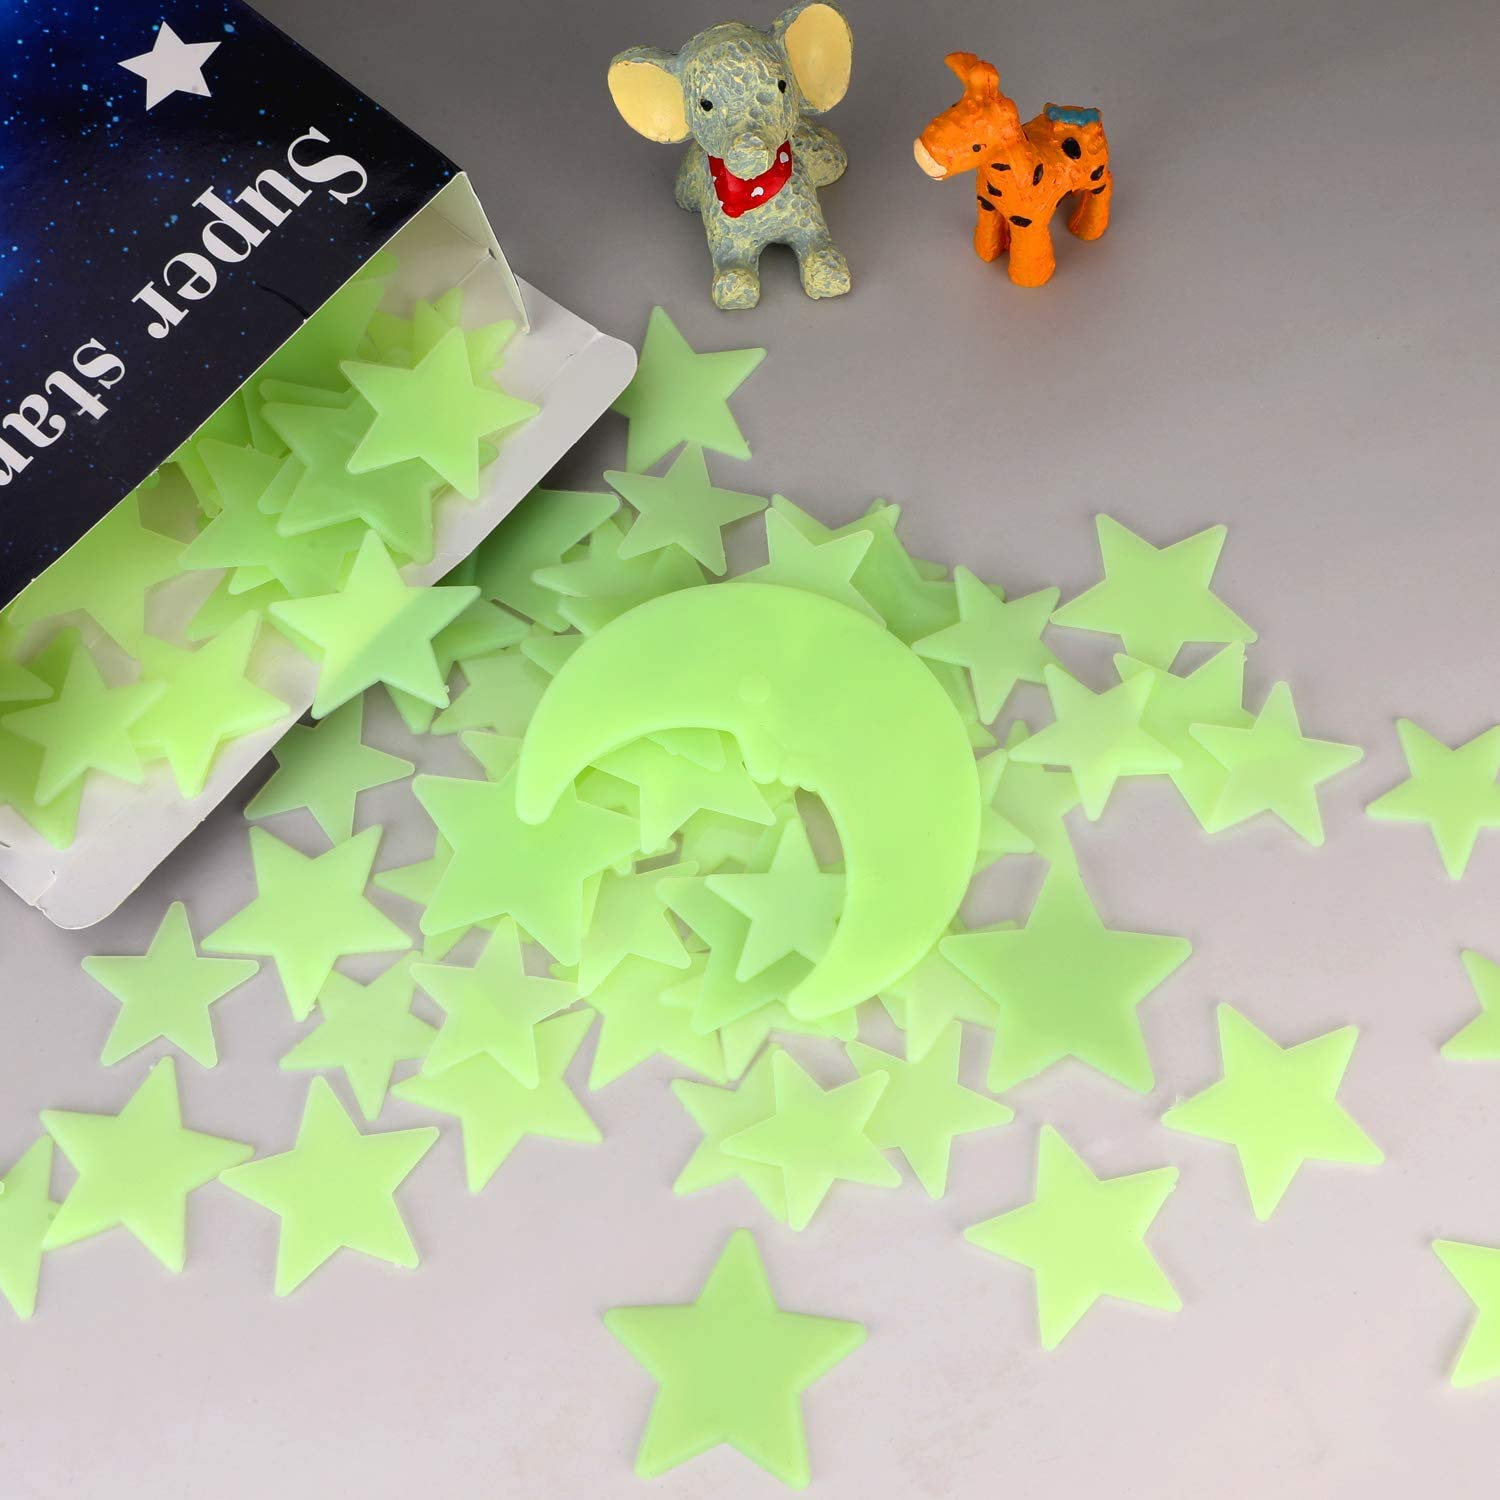 200 Pcs Bright Glow in The Dark Stars 3 Size Stars Bonus Moon Luminous Stickers for Kids Bedroom